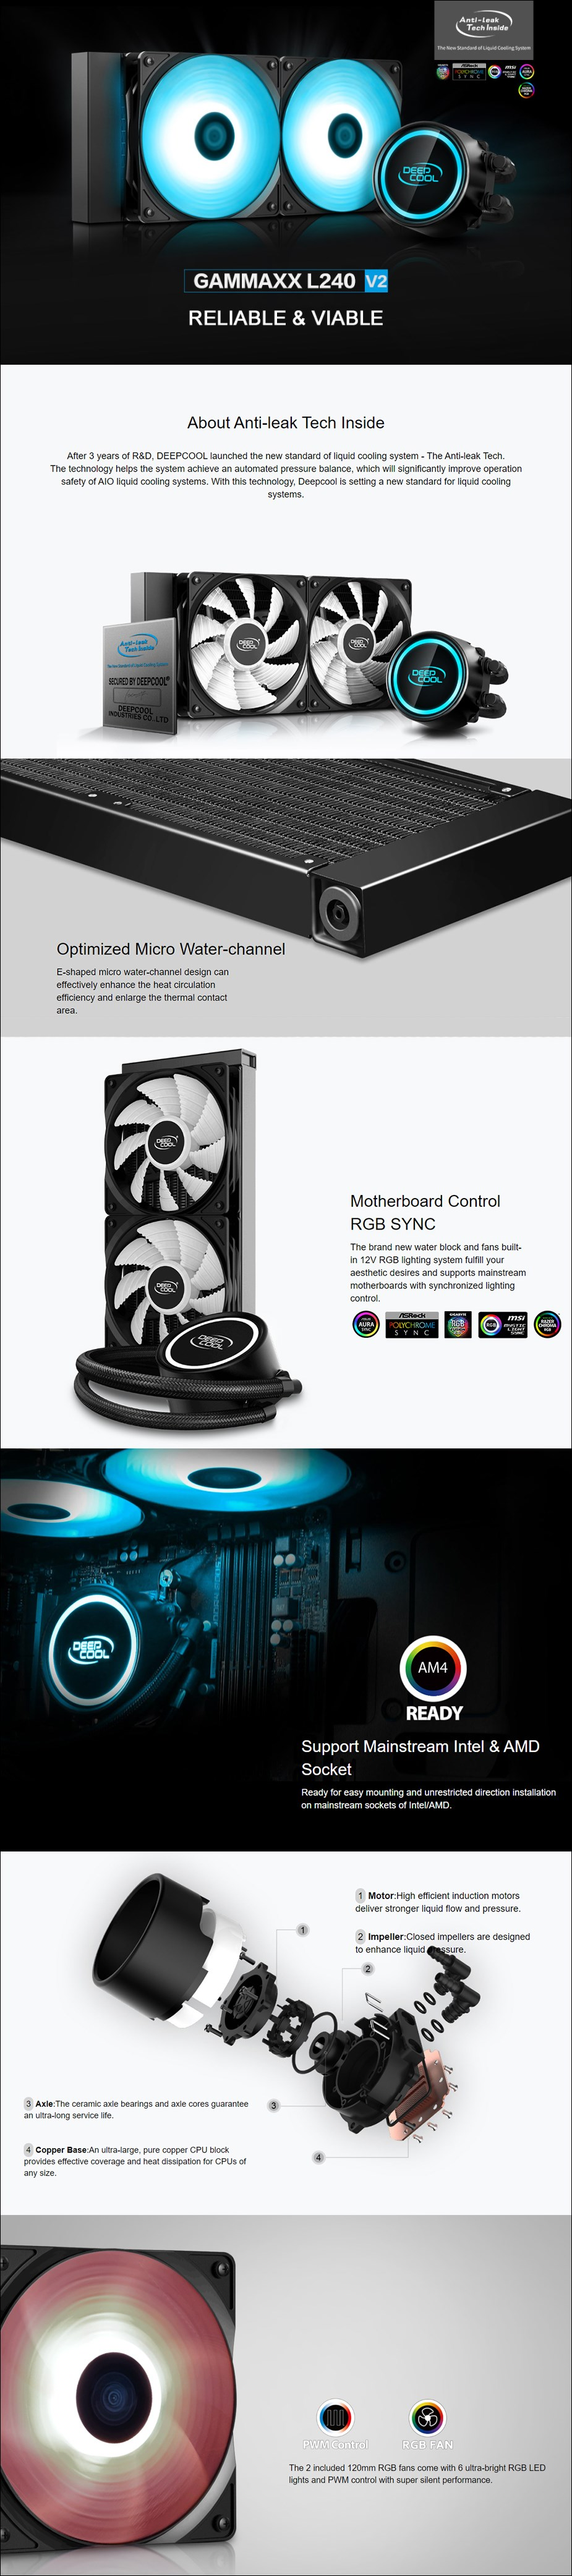 Deepcool Gammaxx L240 v2 RGB LED Liquid CPU Cooler - Overview 1